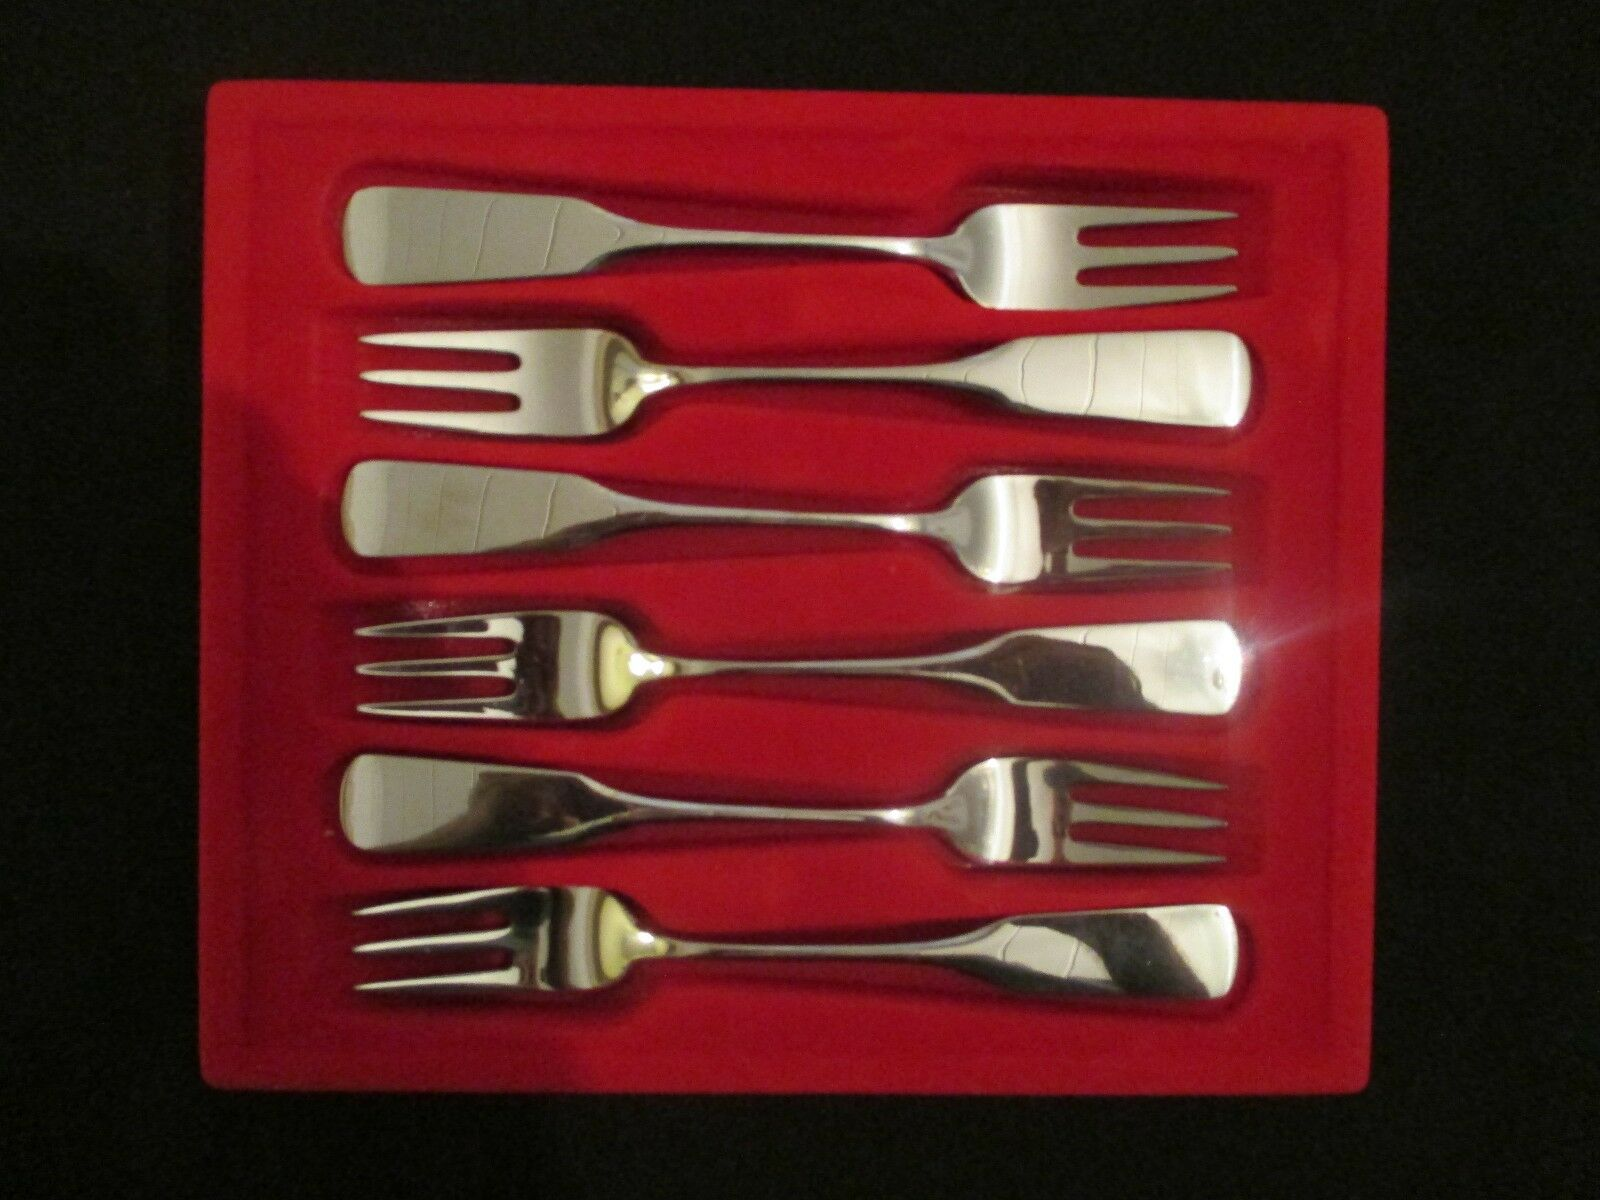 Wmf saturne Cromargan 6 gateau fourchette 15,3 cm 6 pcs. note 1-2 Fourche Fork pilgrim top